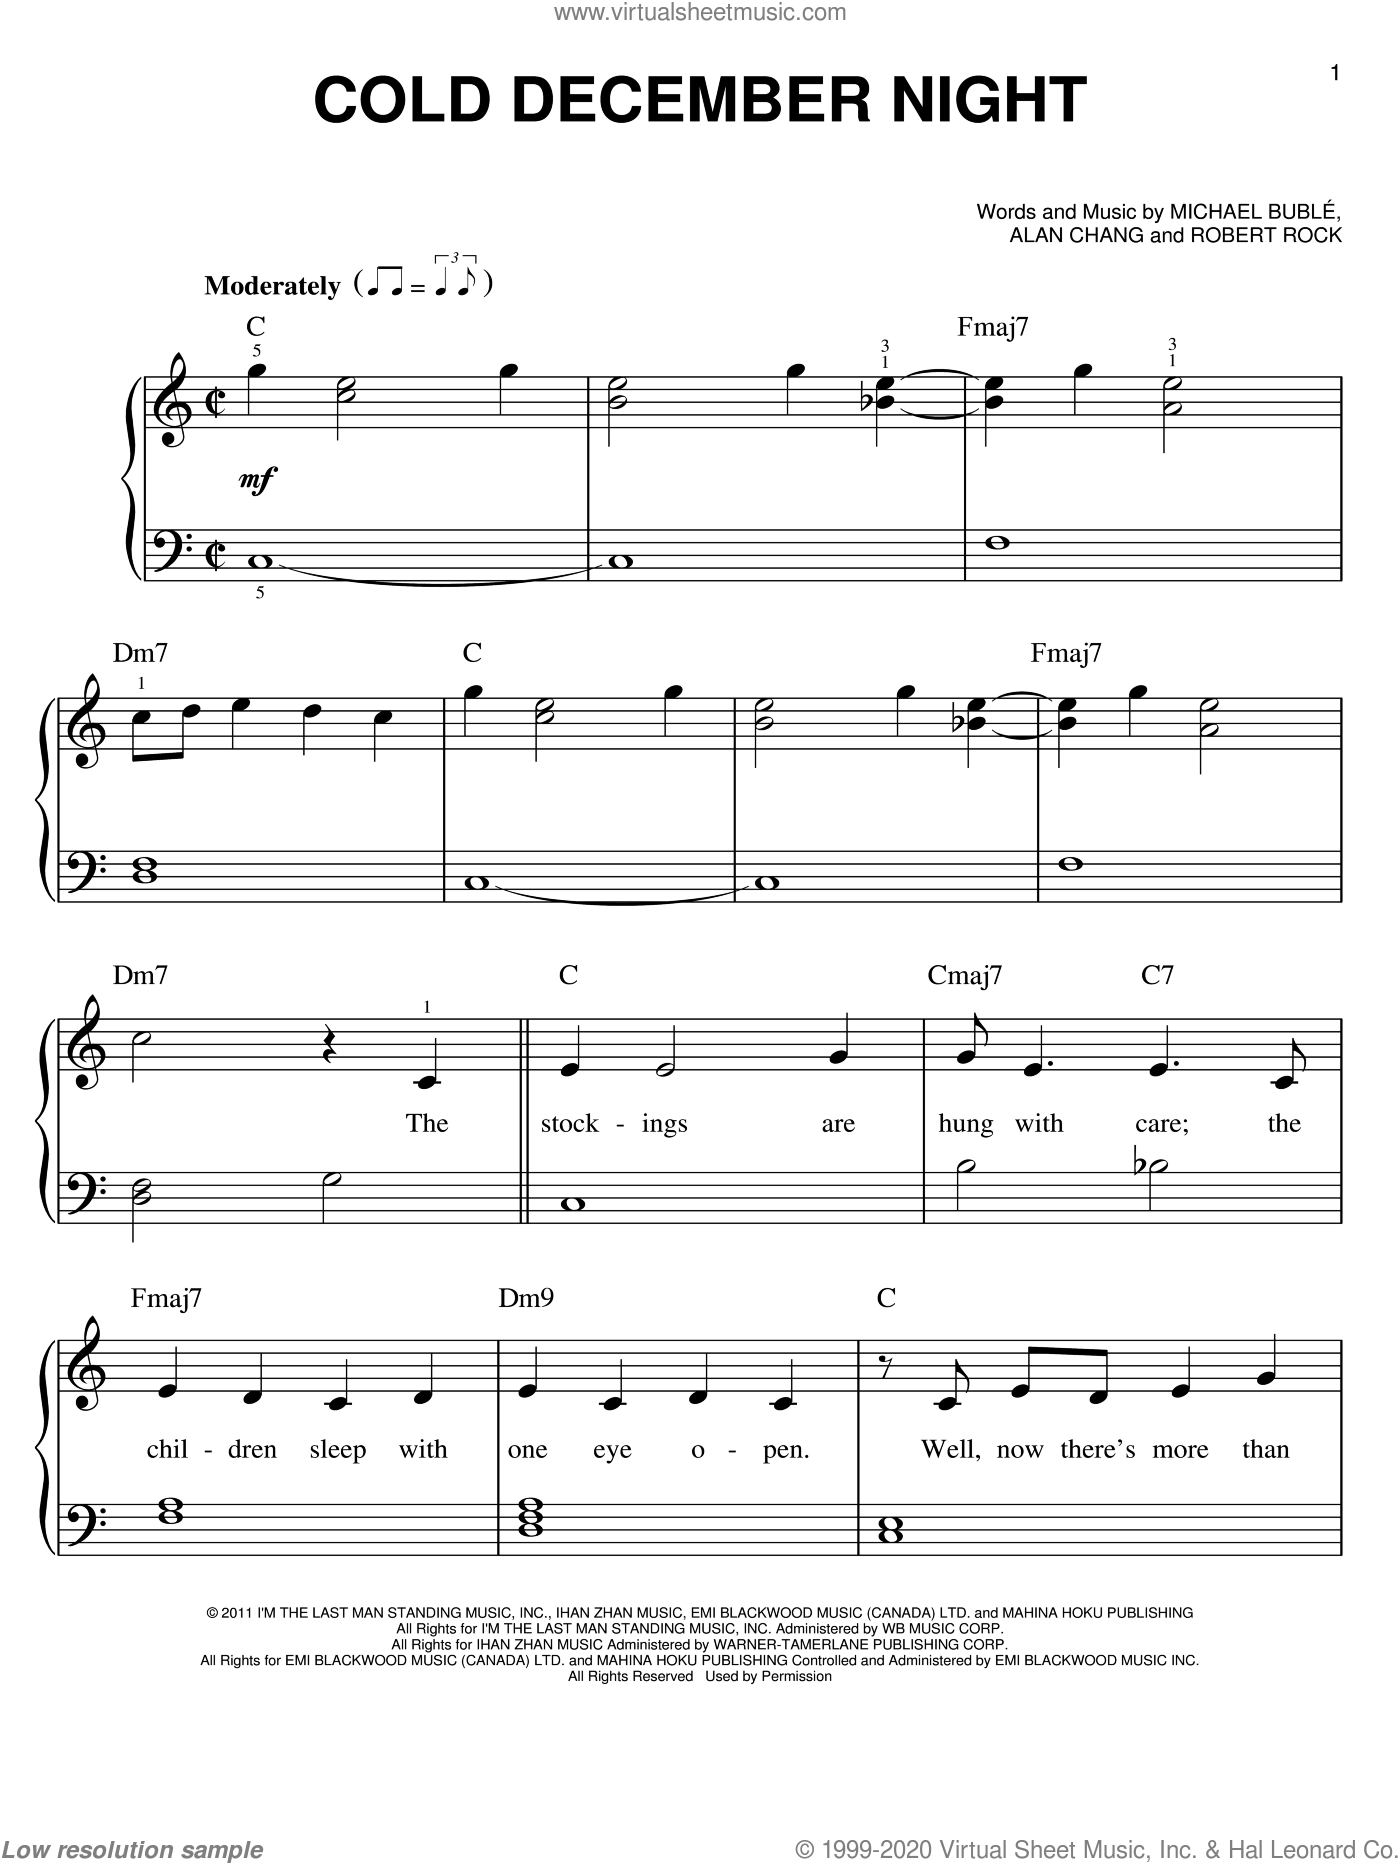 Cold December Night sheet music for piano solo by Michael Buble, Alan Chang and Robert Rock, Christmas carol score, easy piano. Score Image Preview.